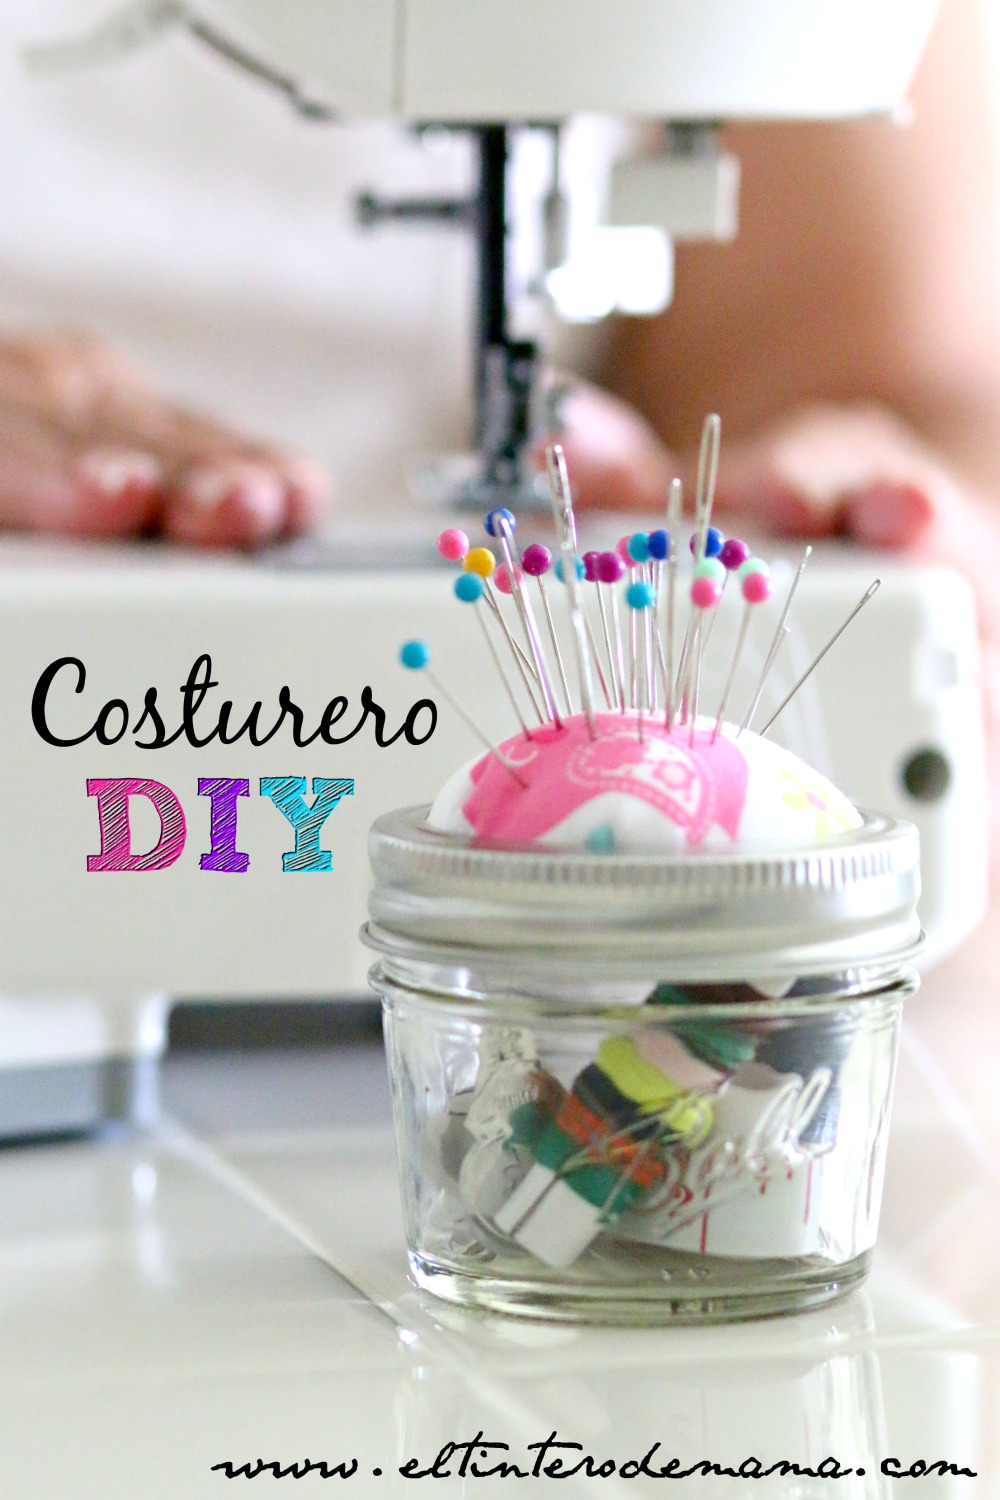 Costurero_DIY